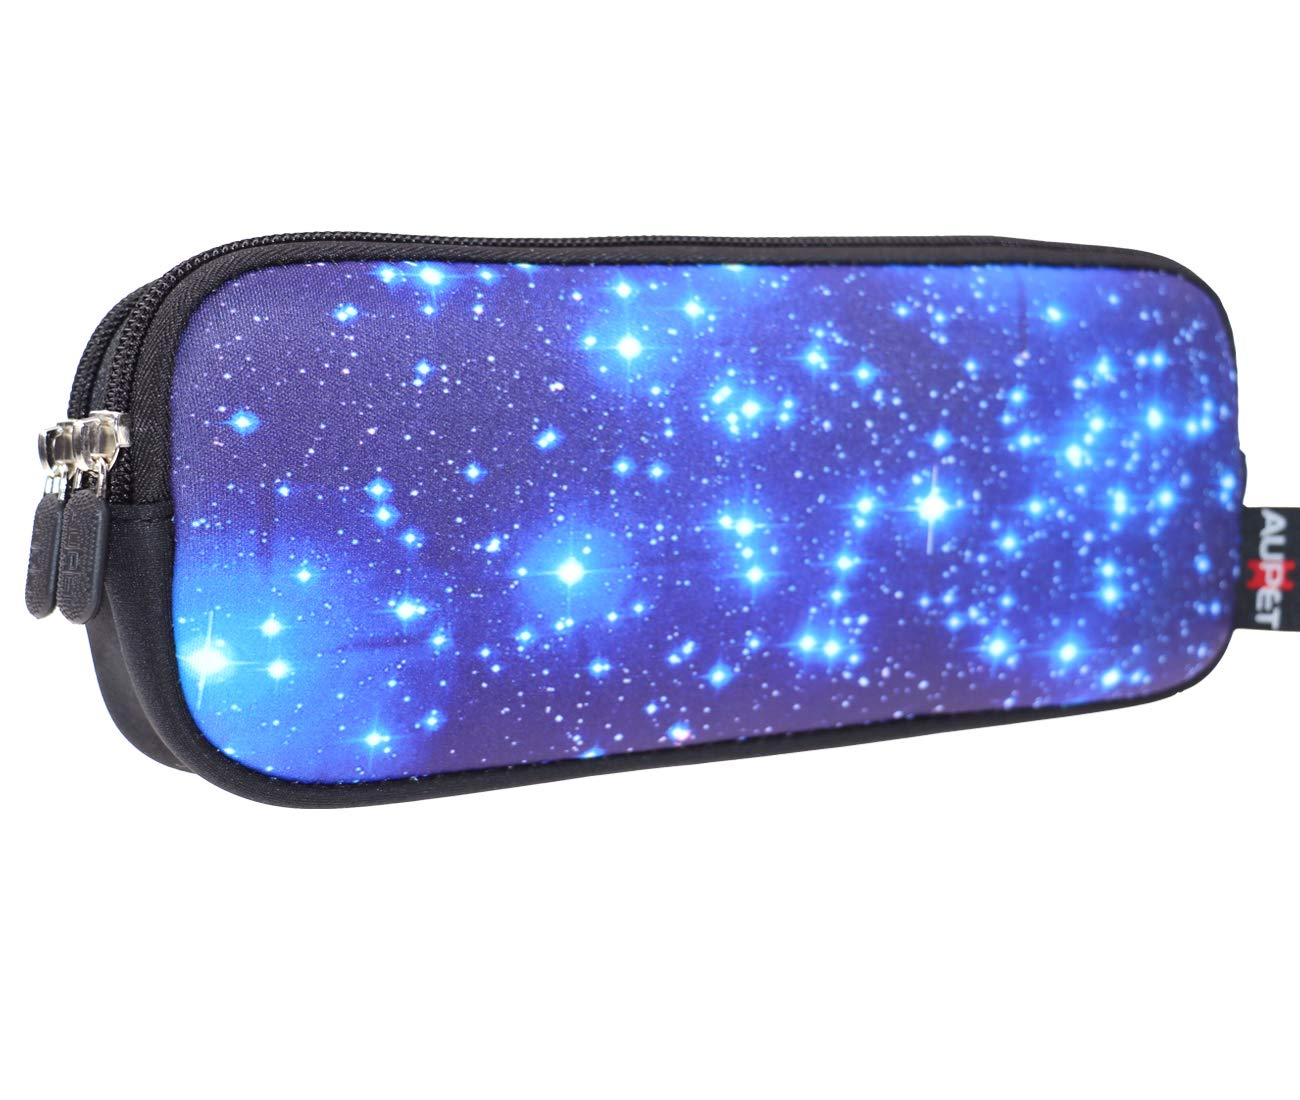 AUPET Pencil Case, Large Capacity Pencil Bag with Two Compartments Durable Zipper Students Stationery Pen Bag for Pens, Pencils, Markers, Eraser and Other School Supplies (Starry Sky)